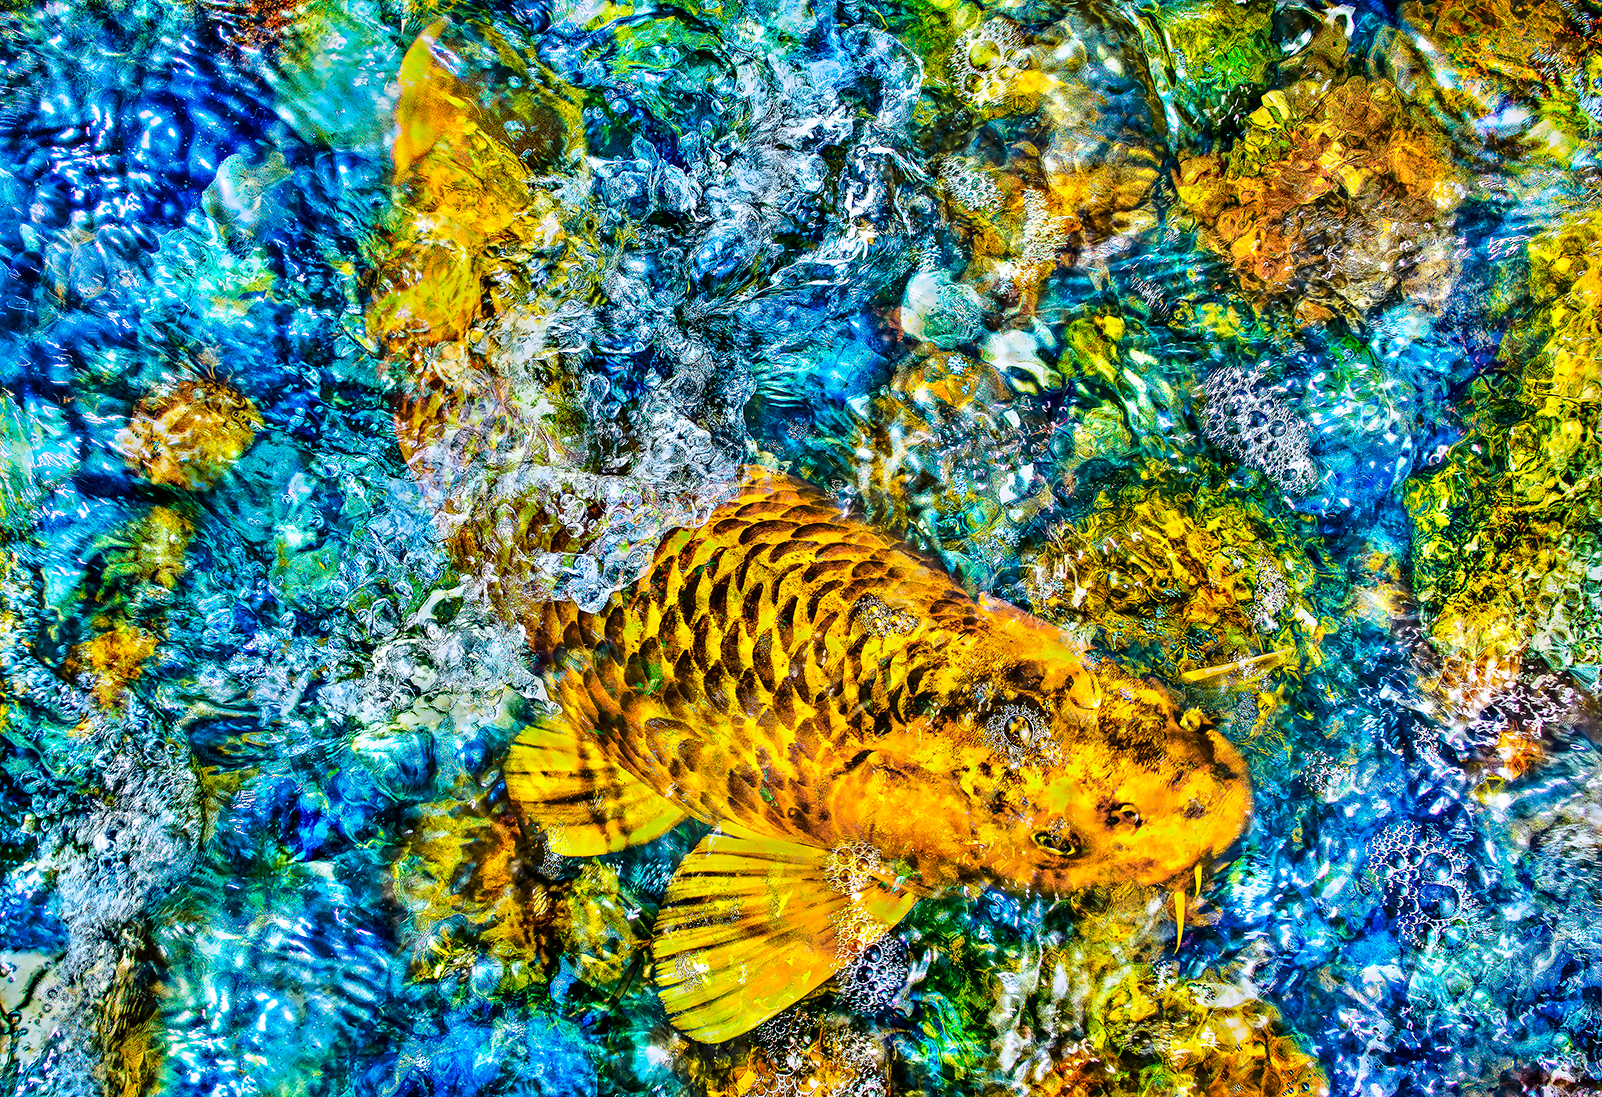 Koi #2 , 2019  Pigment ink on Japanese Gampi paper hot encaustic medium infusion cold wax medium glazed  13 × 19 in  33 × 48.3 cm  Edition 1/10   Inquire